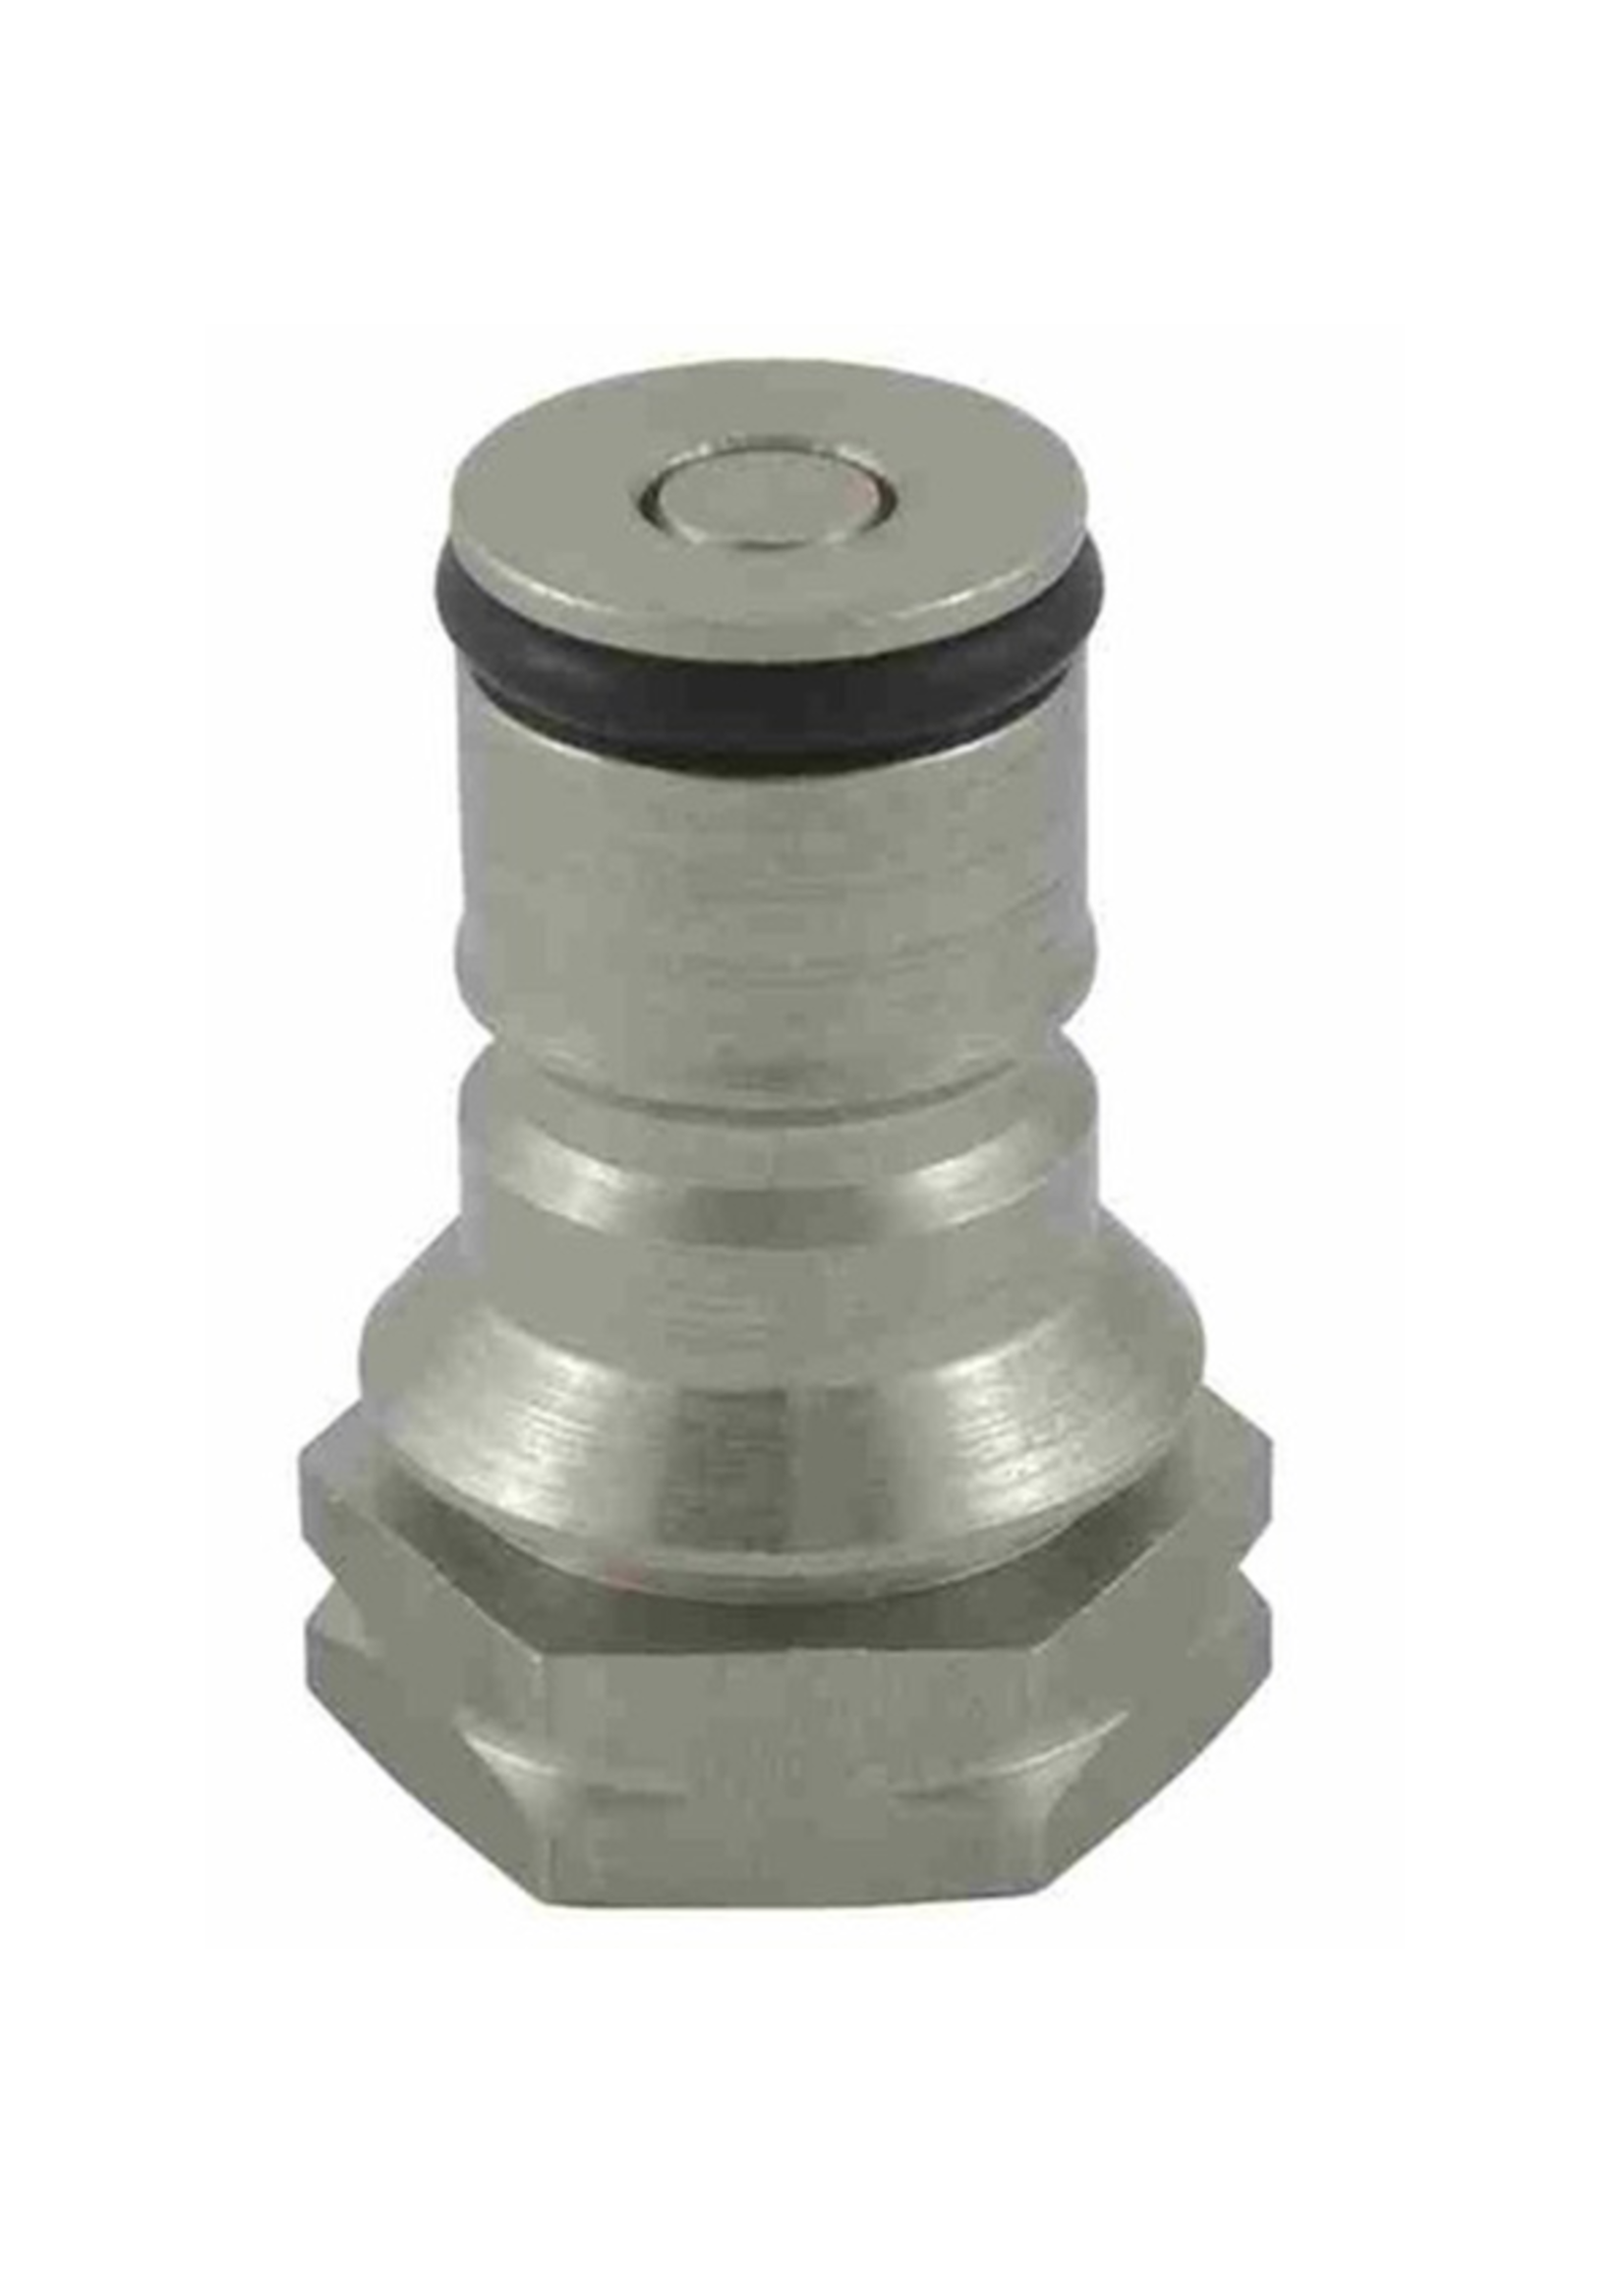 Kegging Ball Lock Post, A.E.B. - Gas (with poppet) - #B21